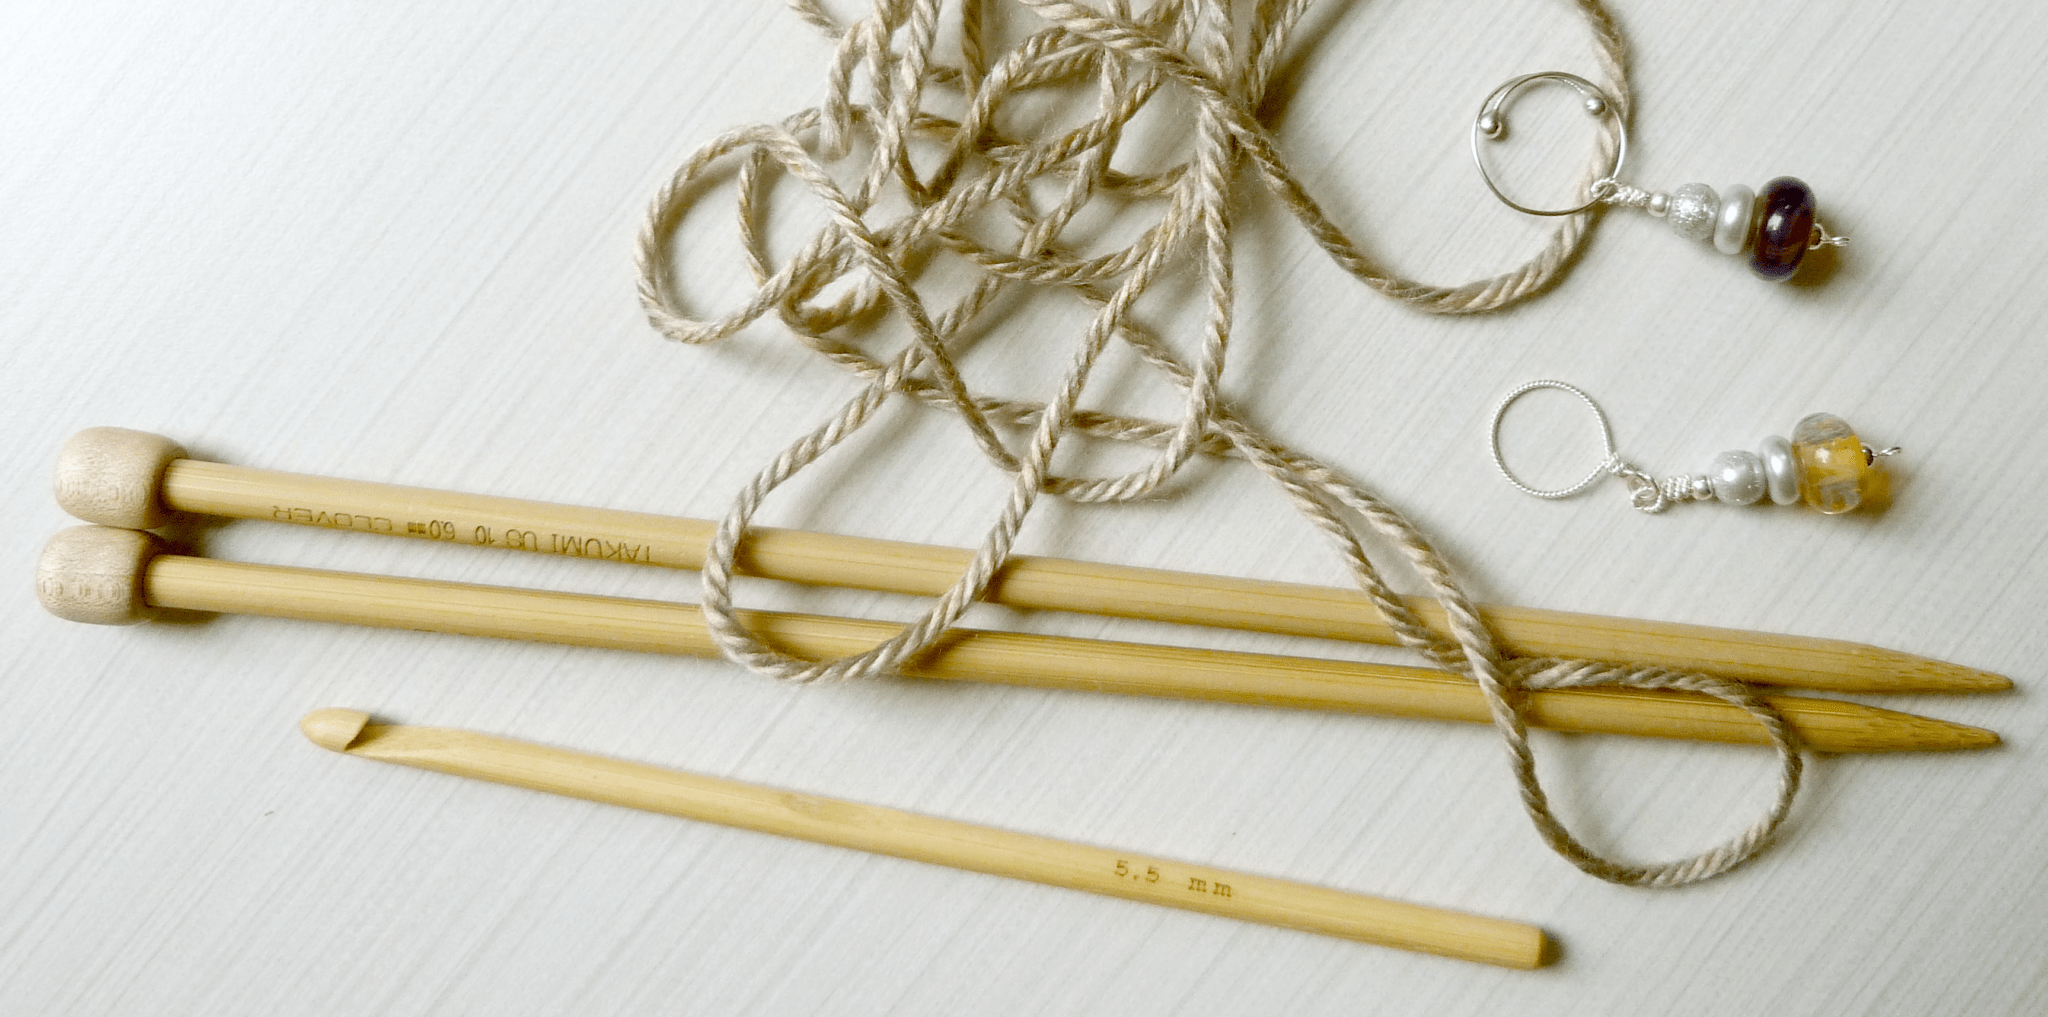 Knit and Crochet Supplies for Beginners